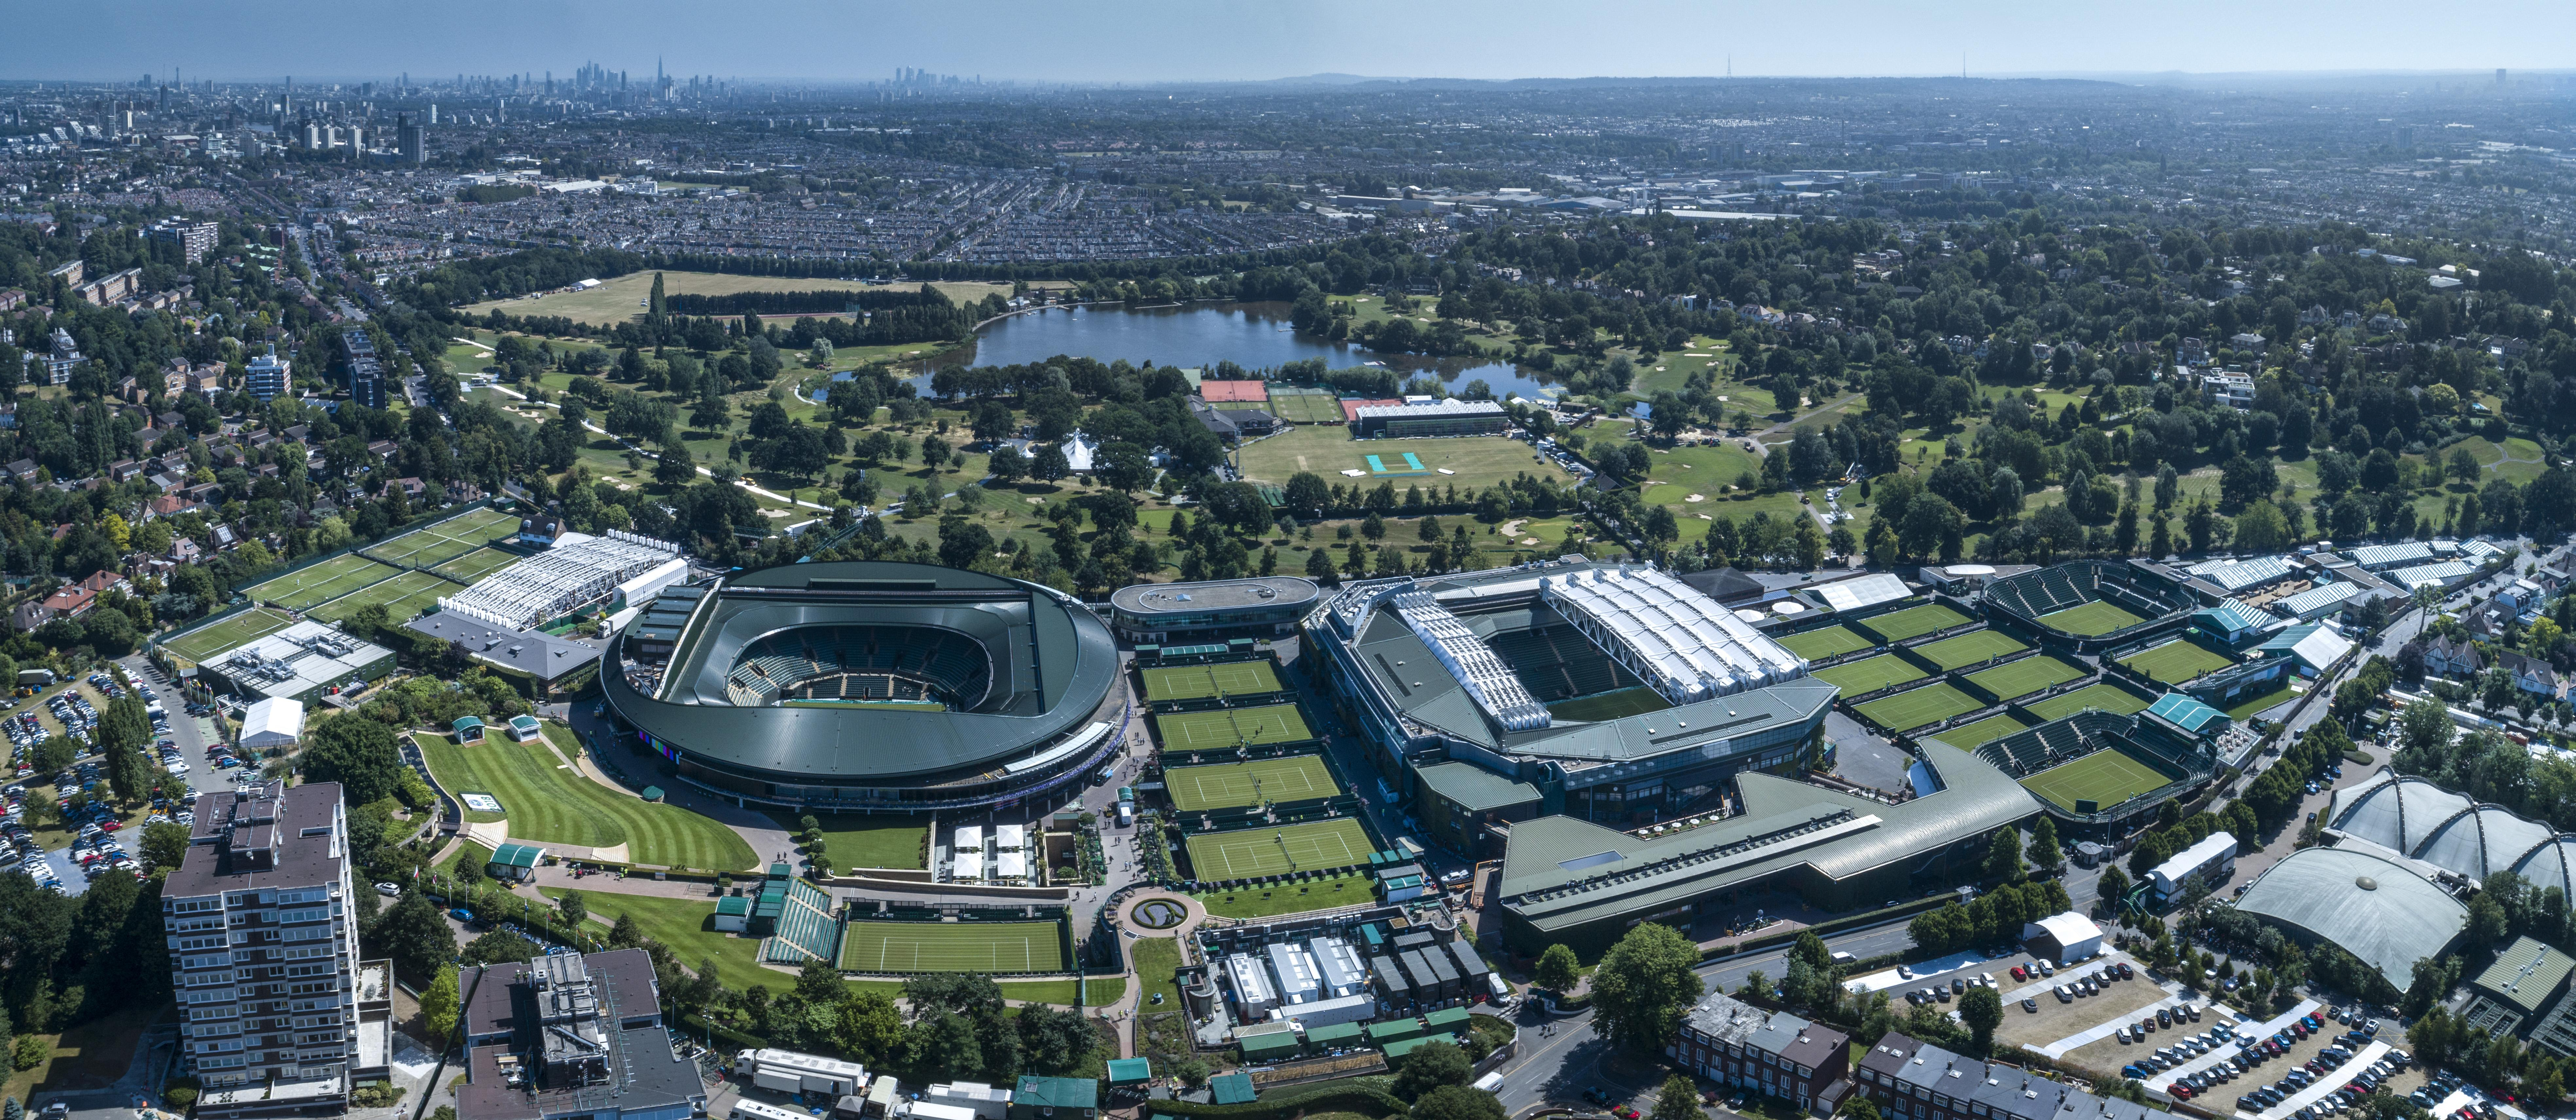 Proposed Wimbledon expansion plans include new courts for qualifying events